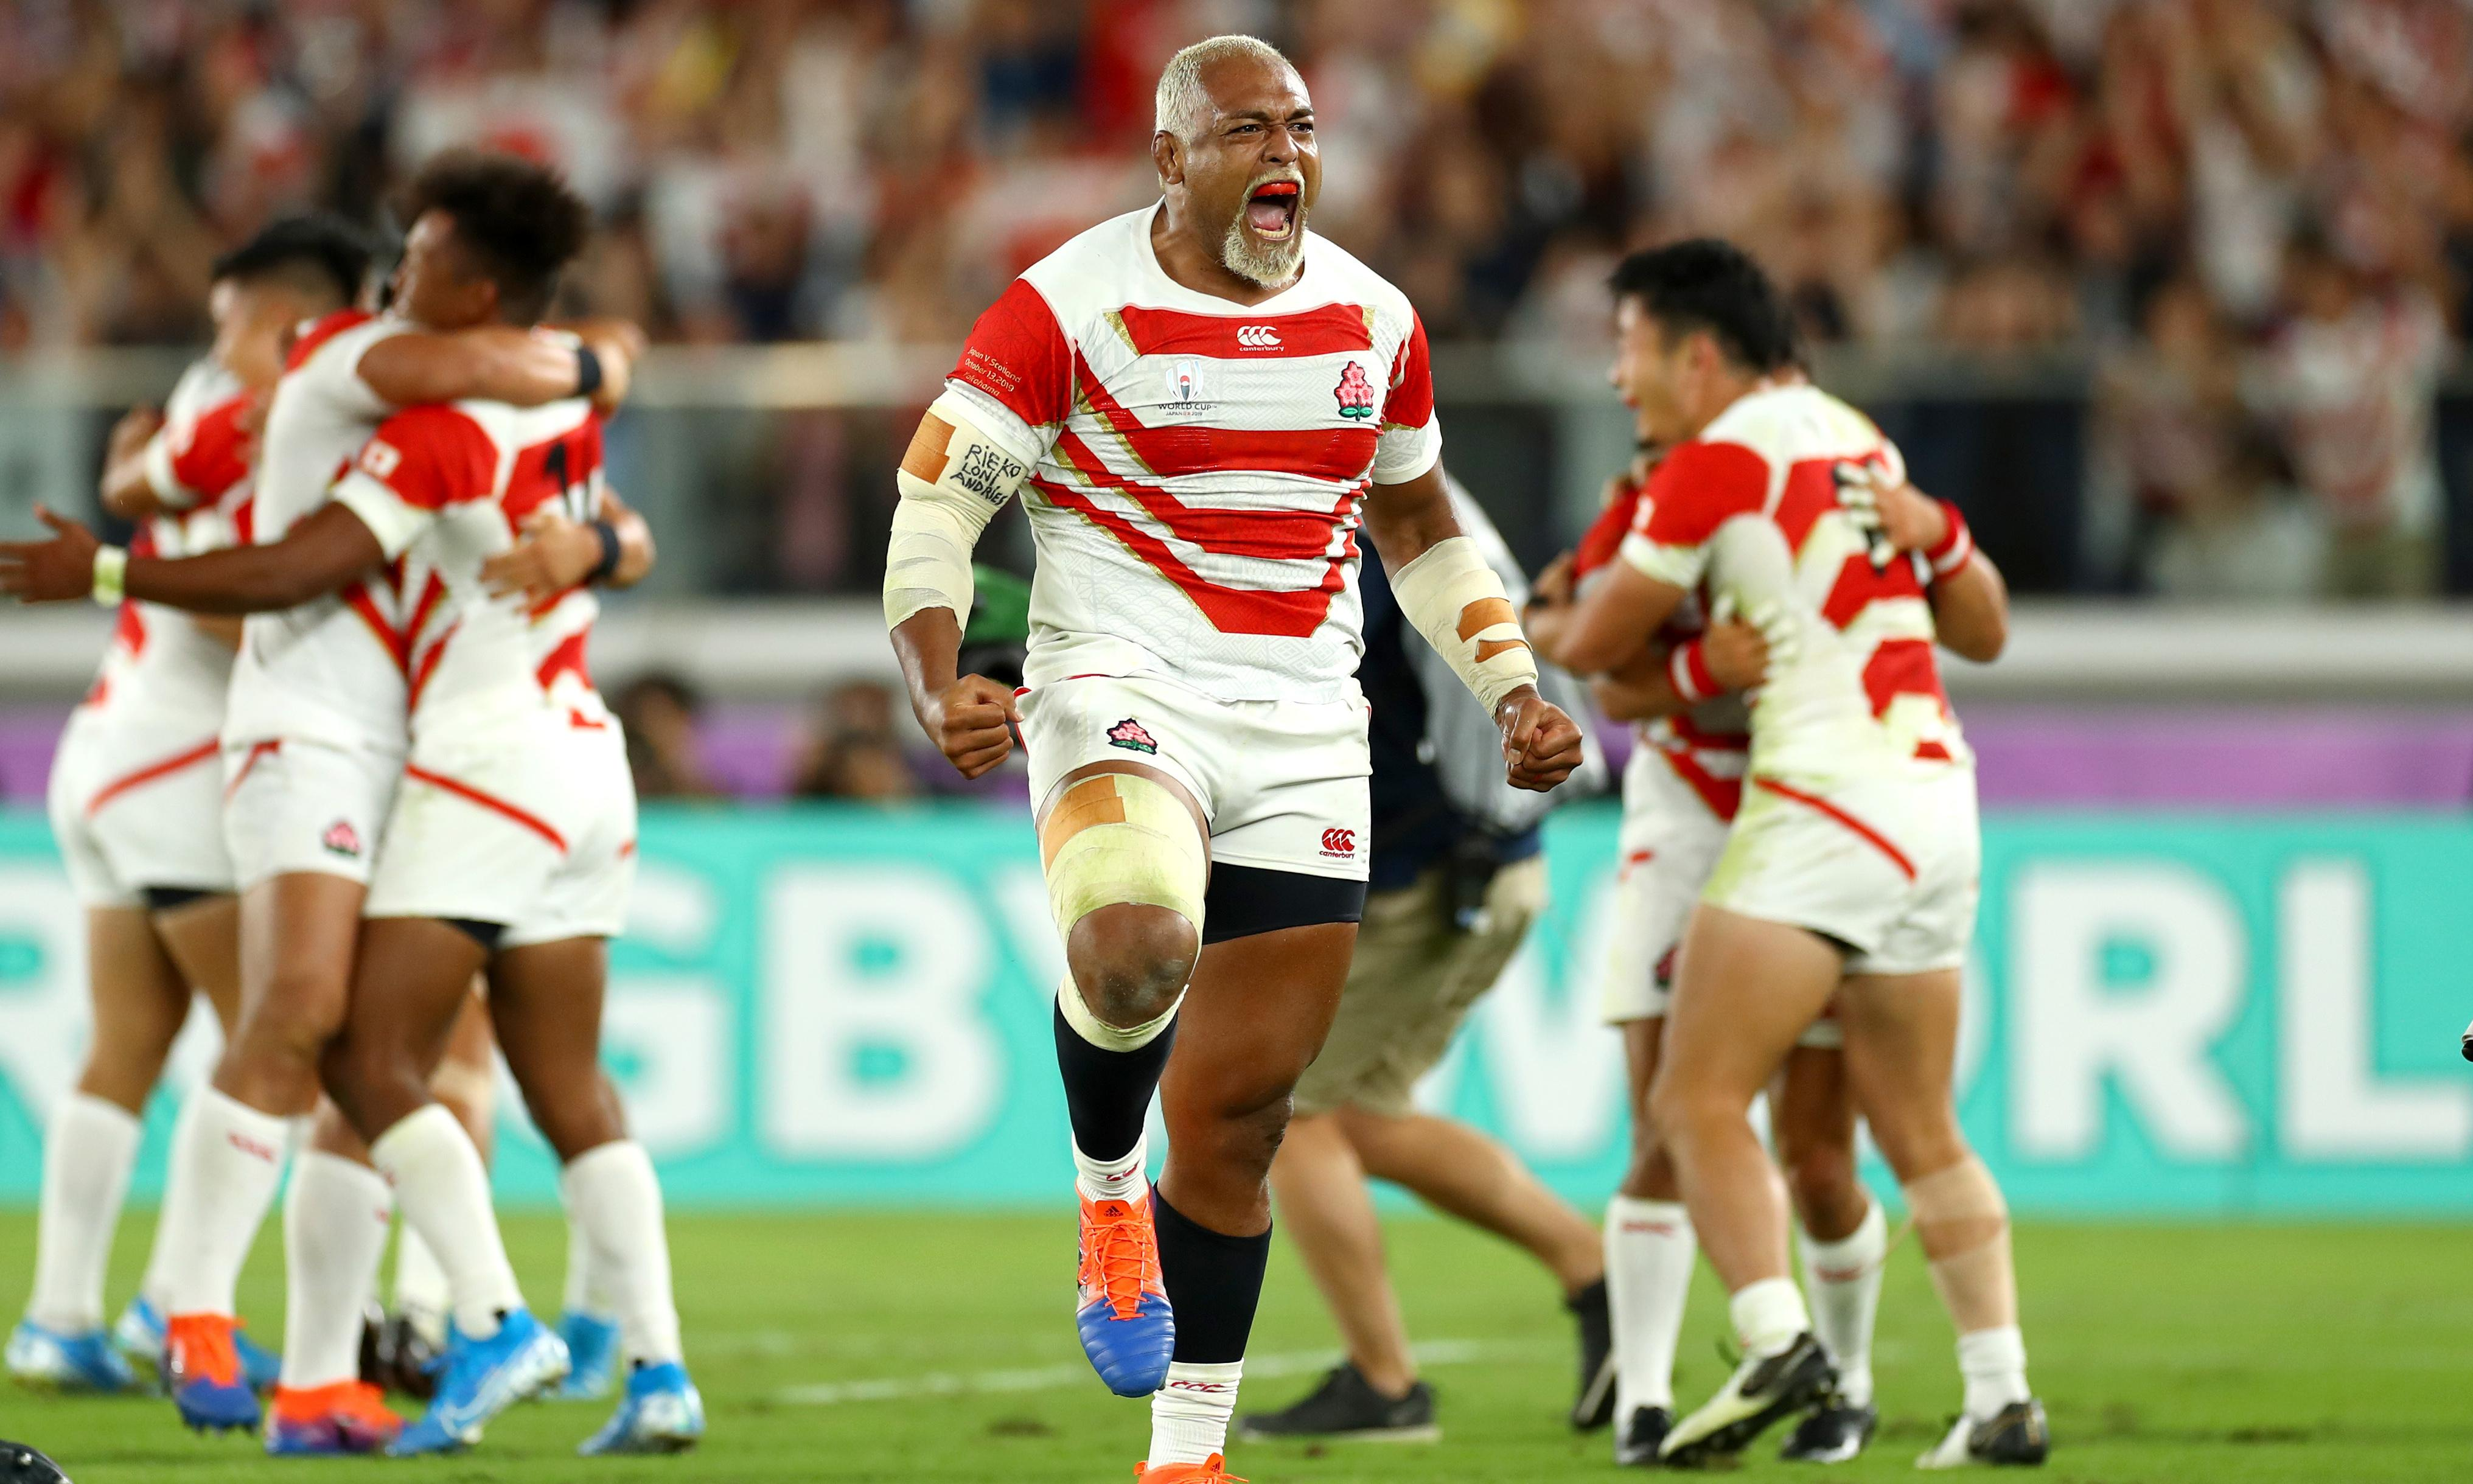 In Japan they call it doryoku – but effort alone won't beat South Africa